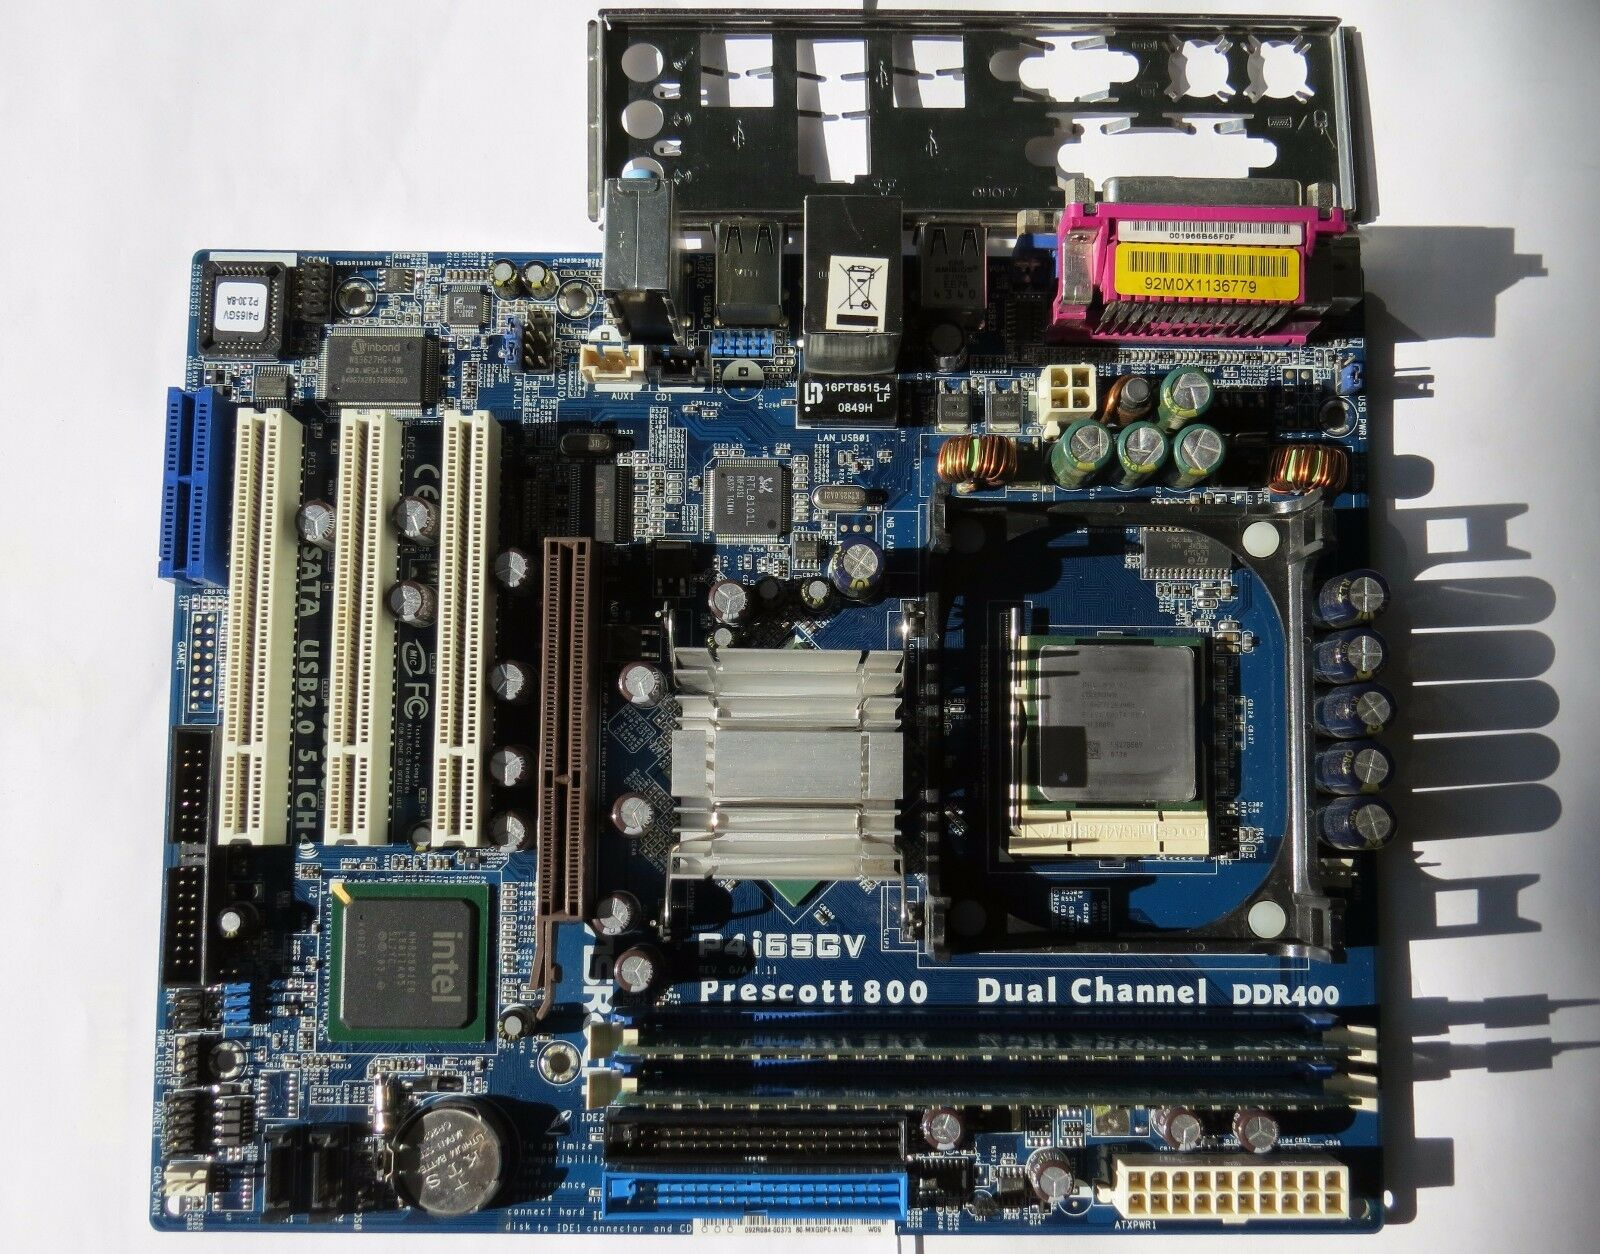 Asrock P4i65GV 2.00 Drivers for Windows 7